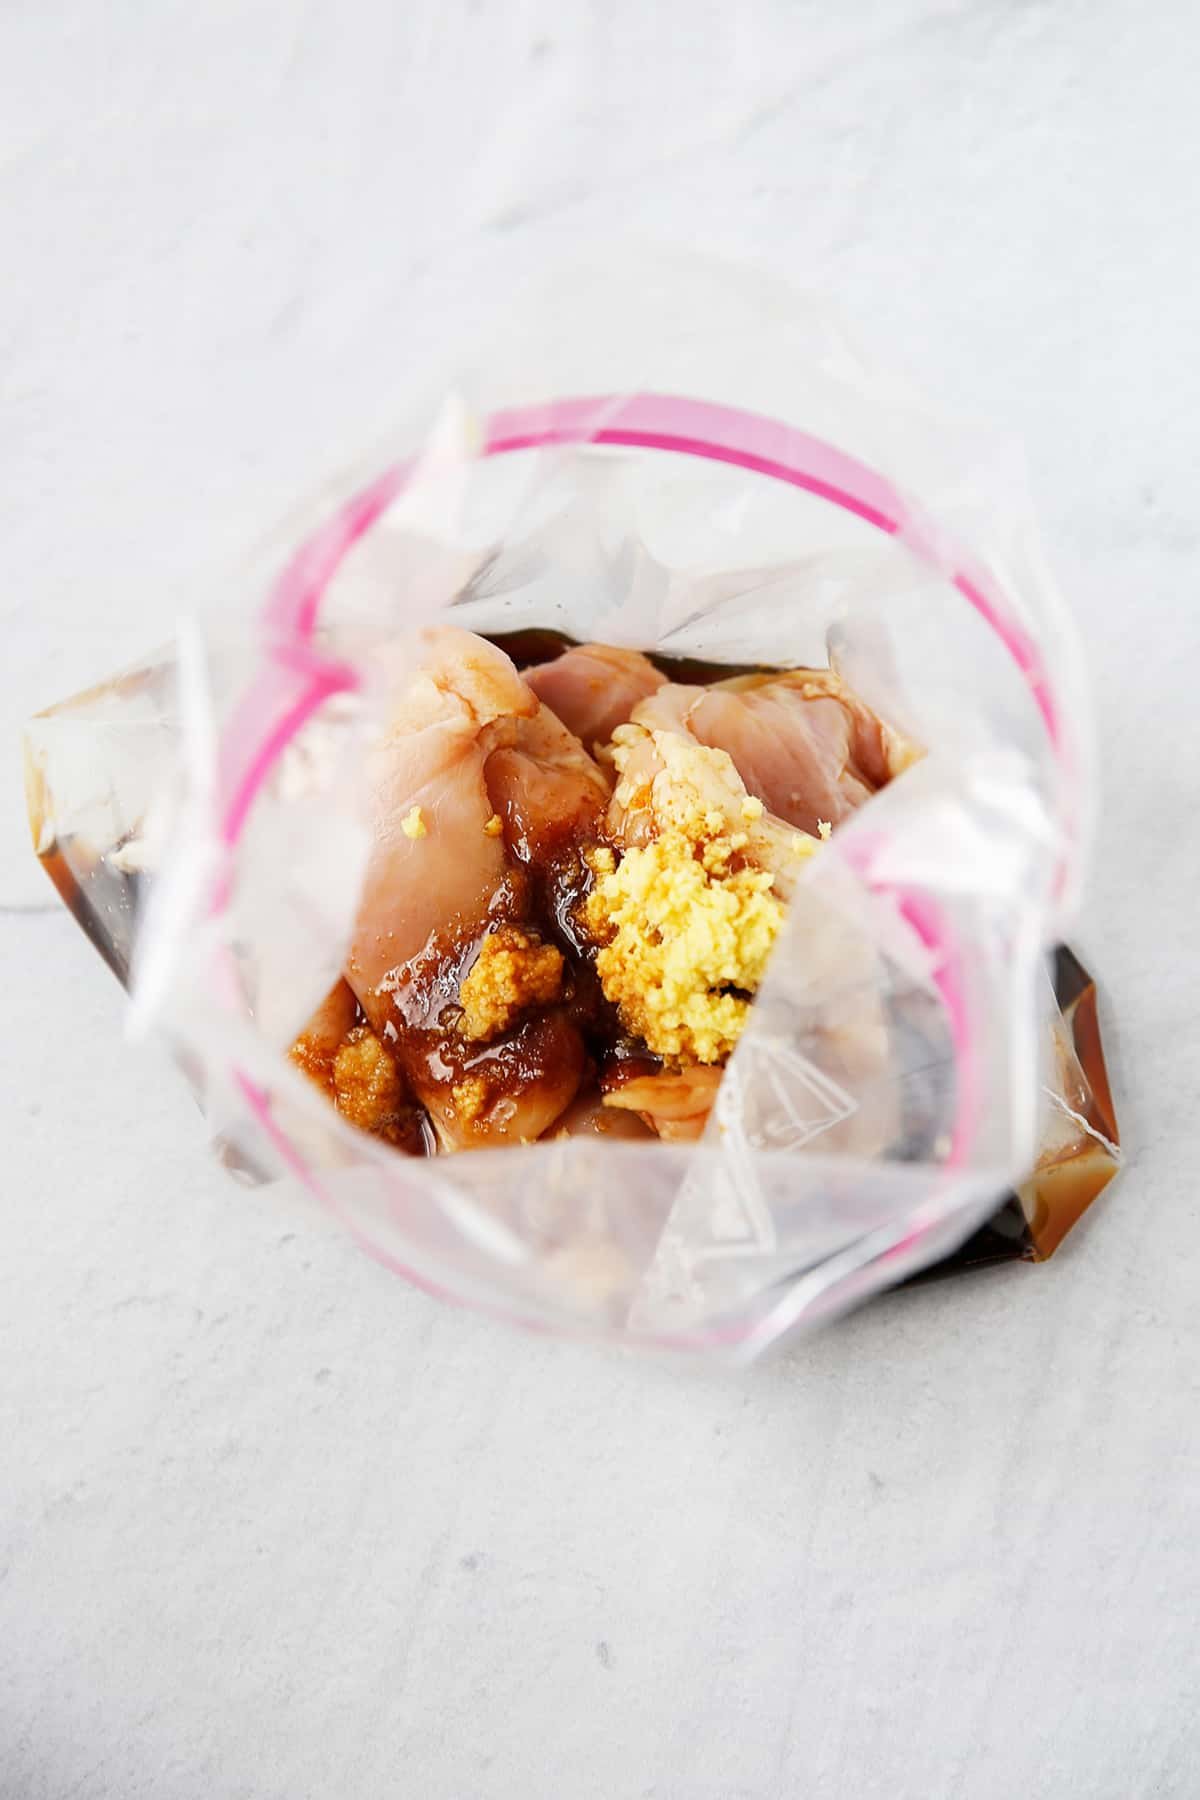 Dump freezer teriyaki chicken in a freezer bag